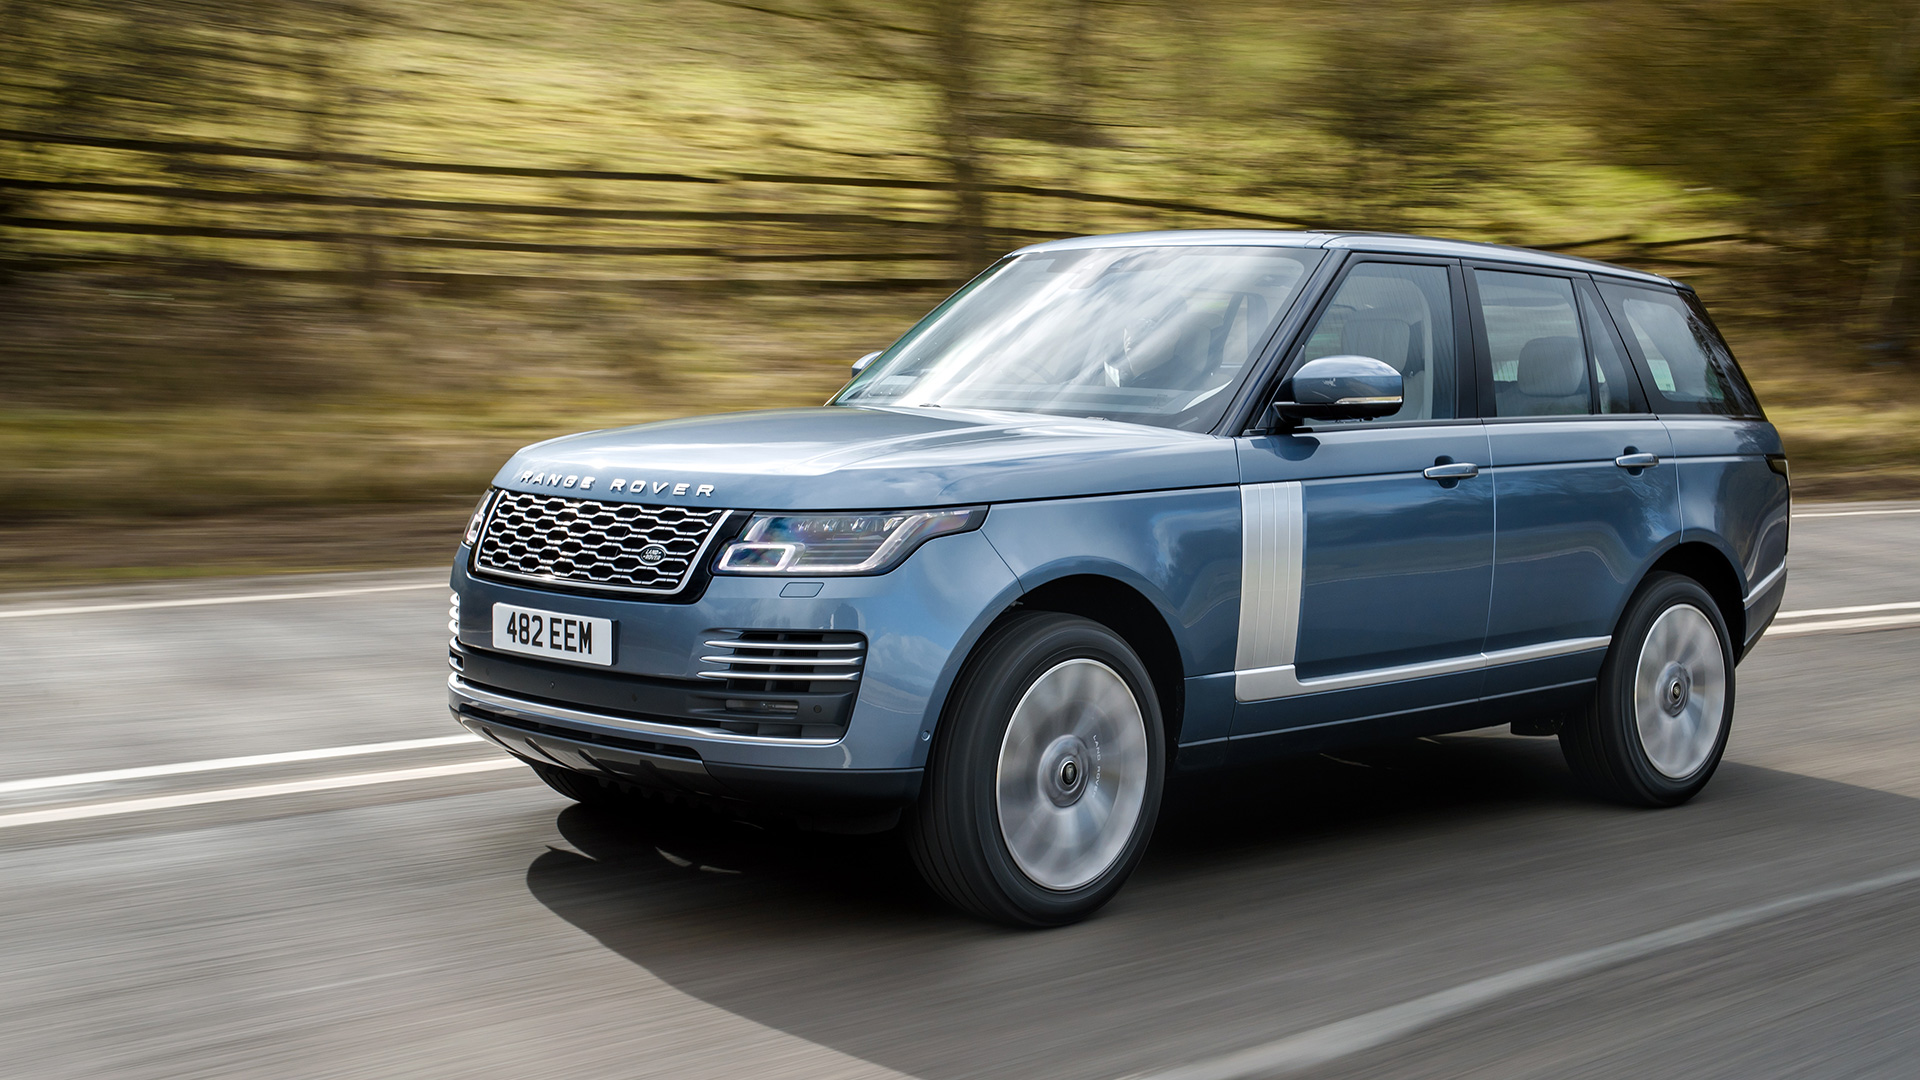 land rover range rover p400e phev 2018 price mileage reviews specification gallery overdrive. Black Bedroom Furniture Sets. Home Design Ideas